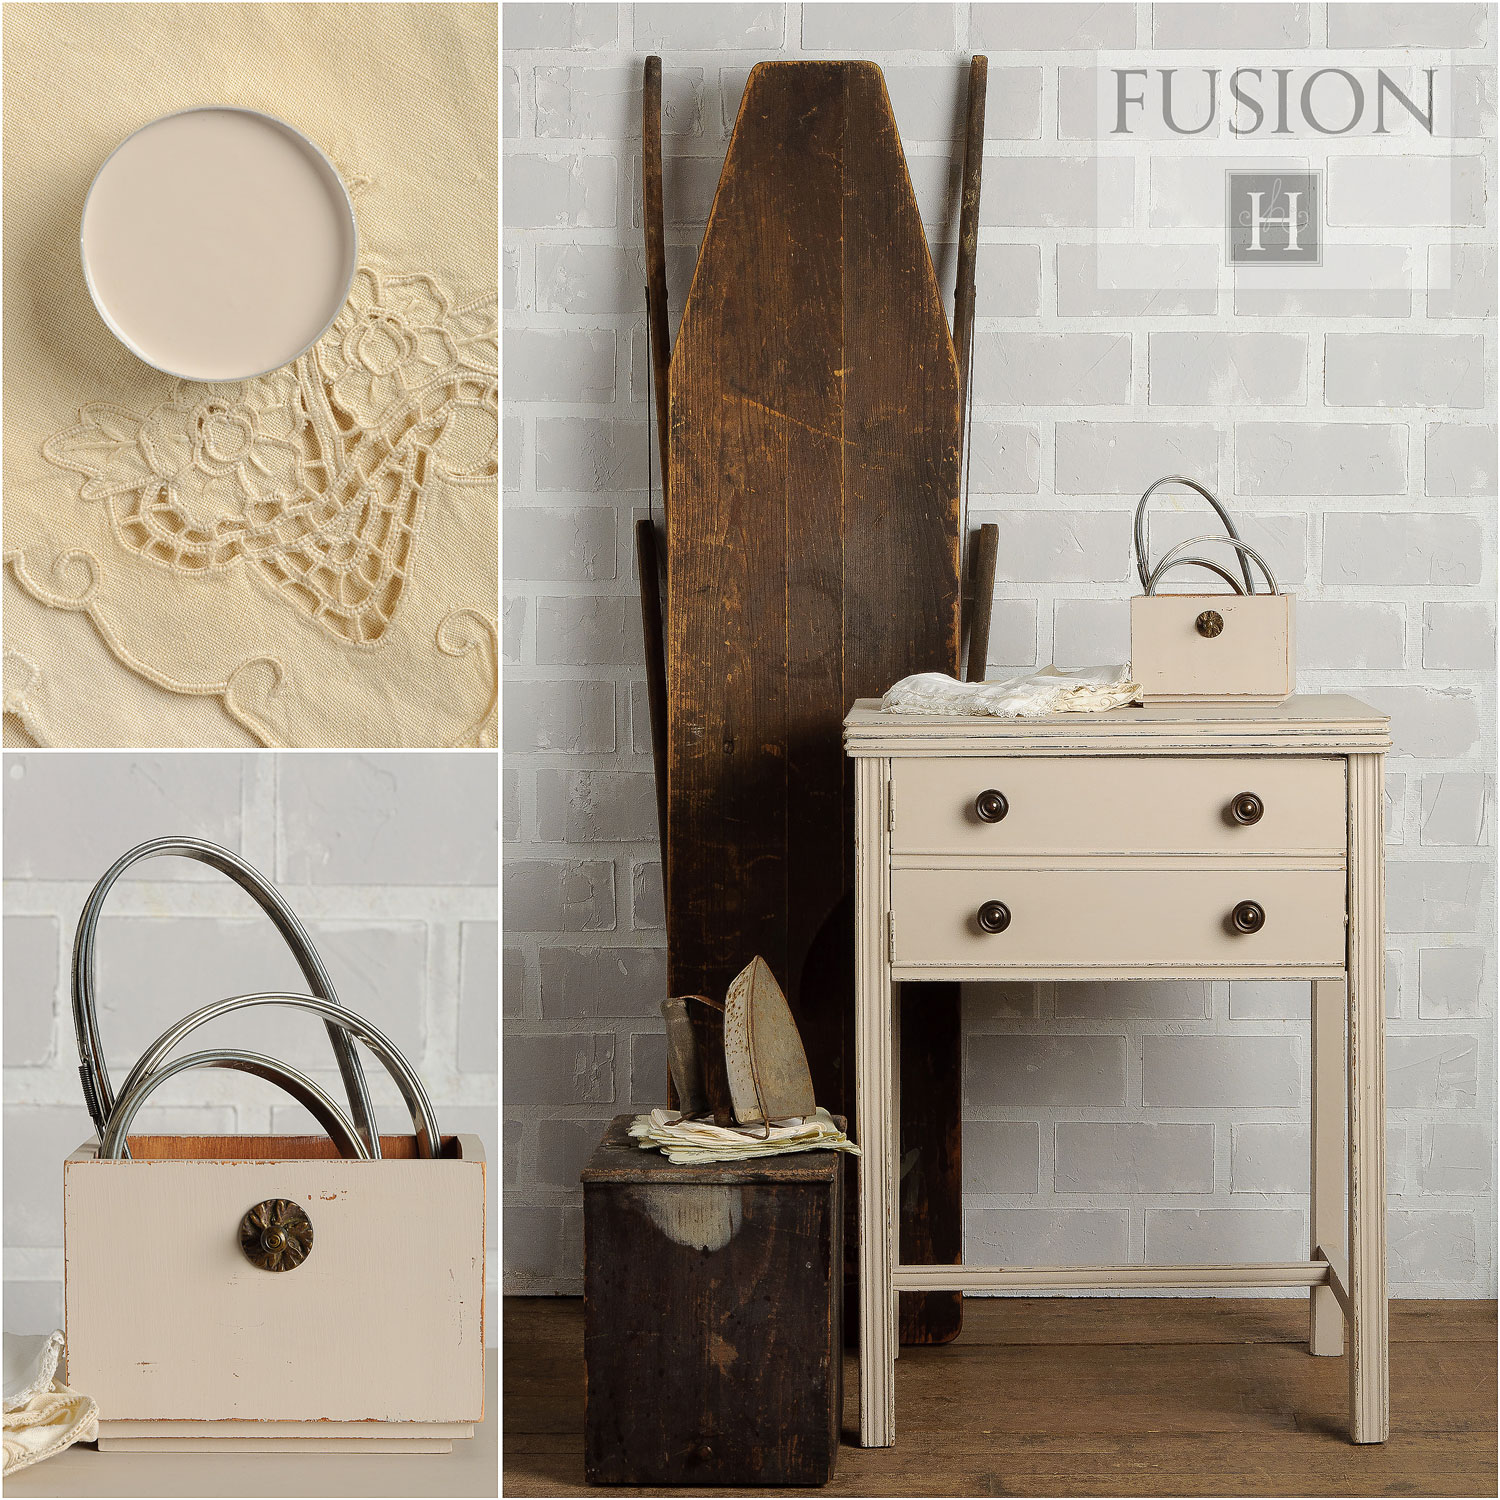 Fusion paint in cathedral taupe - via My Painted Door (.com)